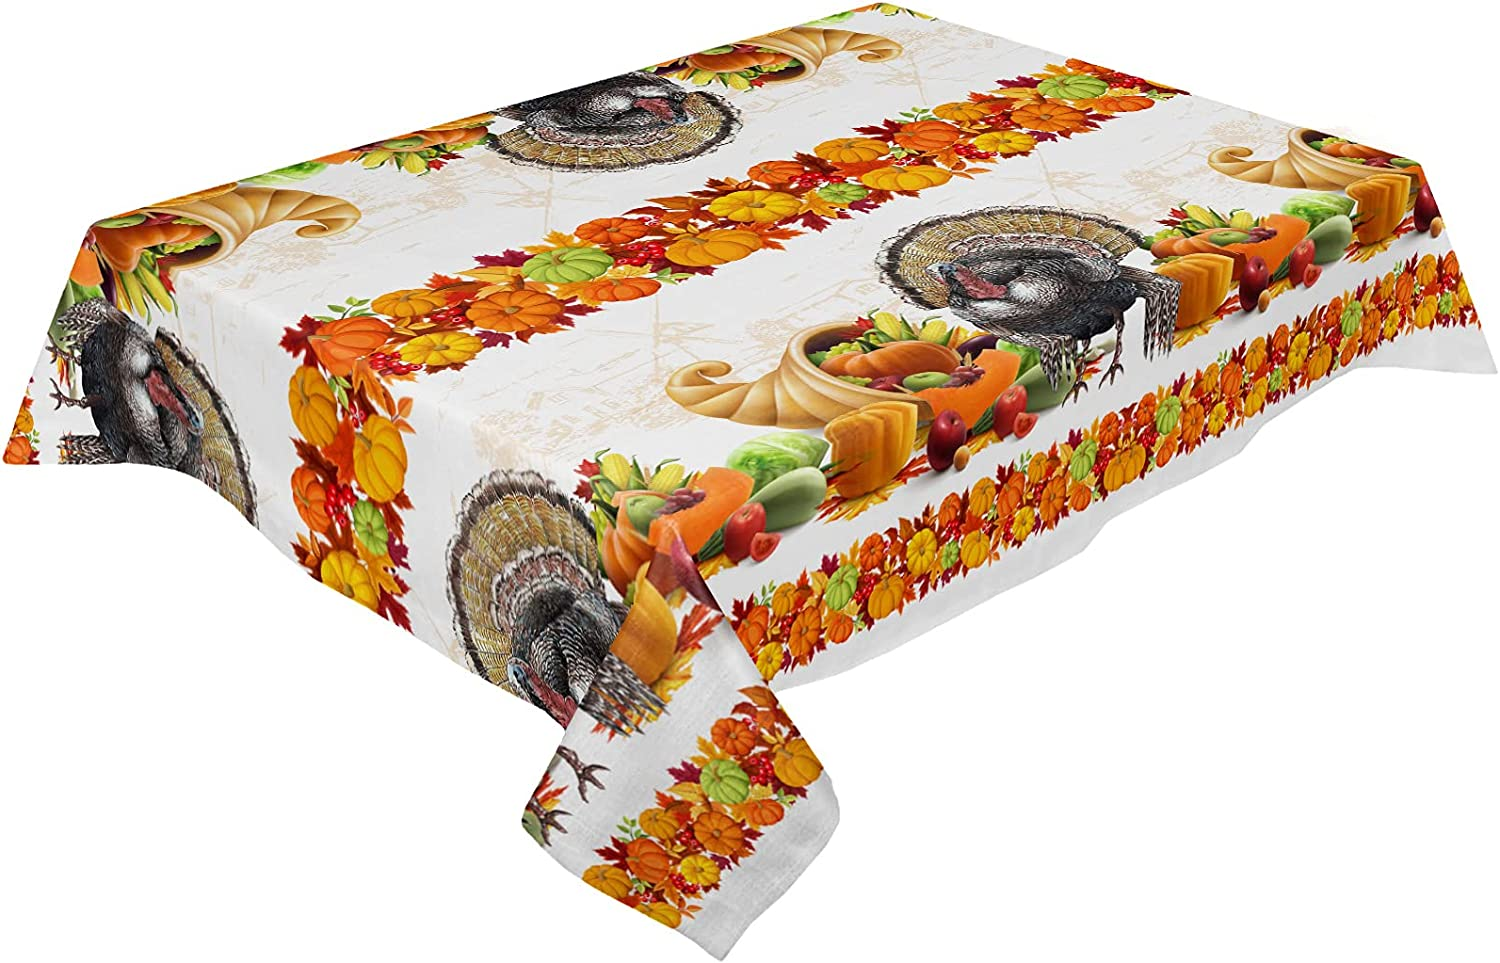 Thanksgiving Spring new work Tablecloth Turkey Pumpkin Cotton Cloth free shipping Linen Table